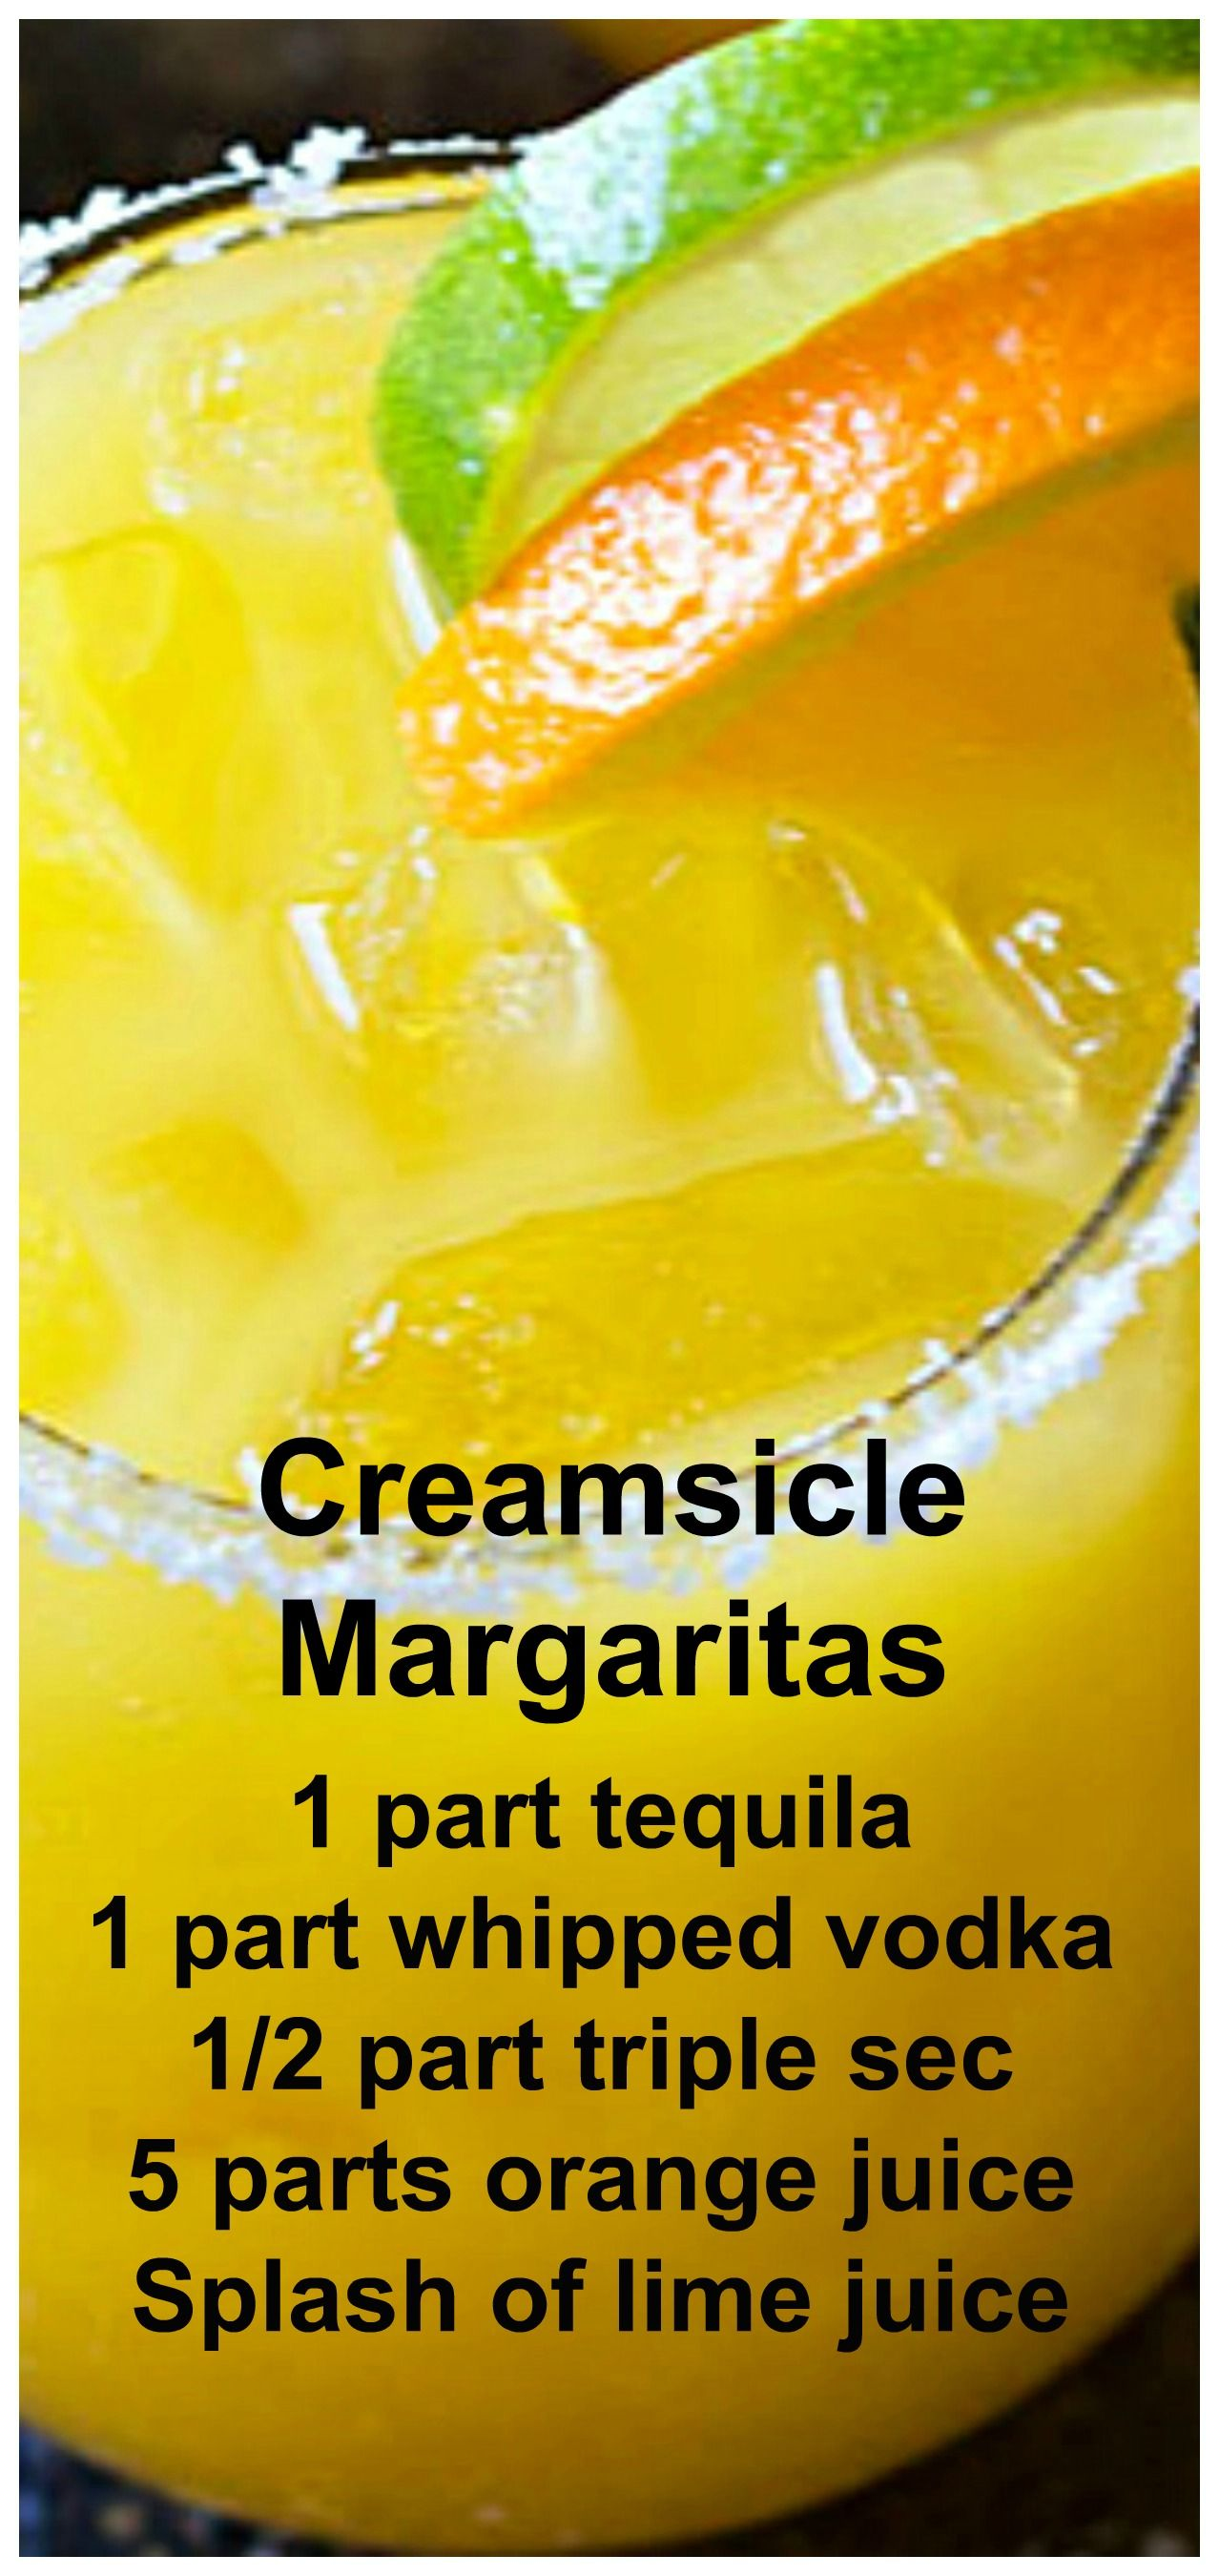 Creamsicle Margaritas #tequiladrinks